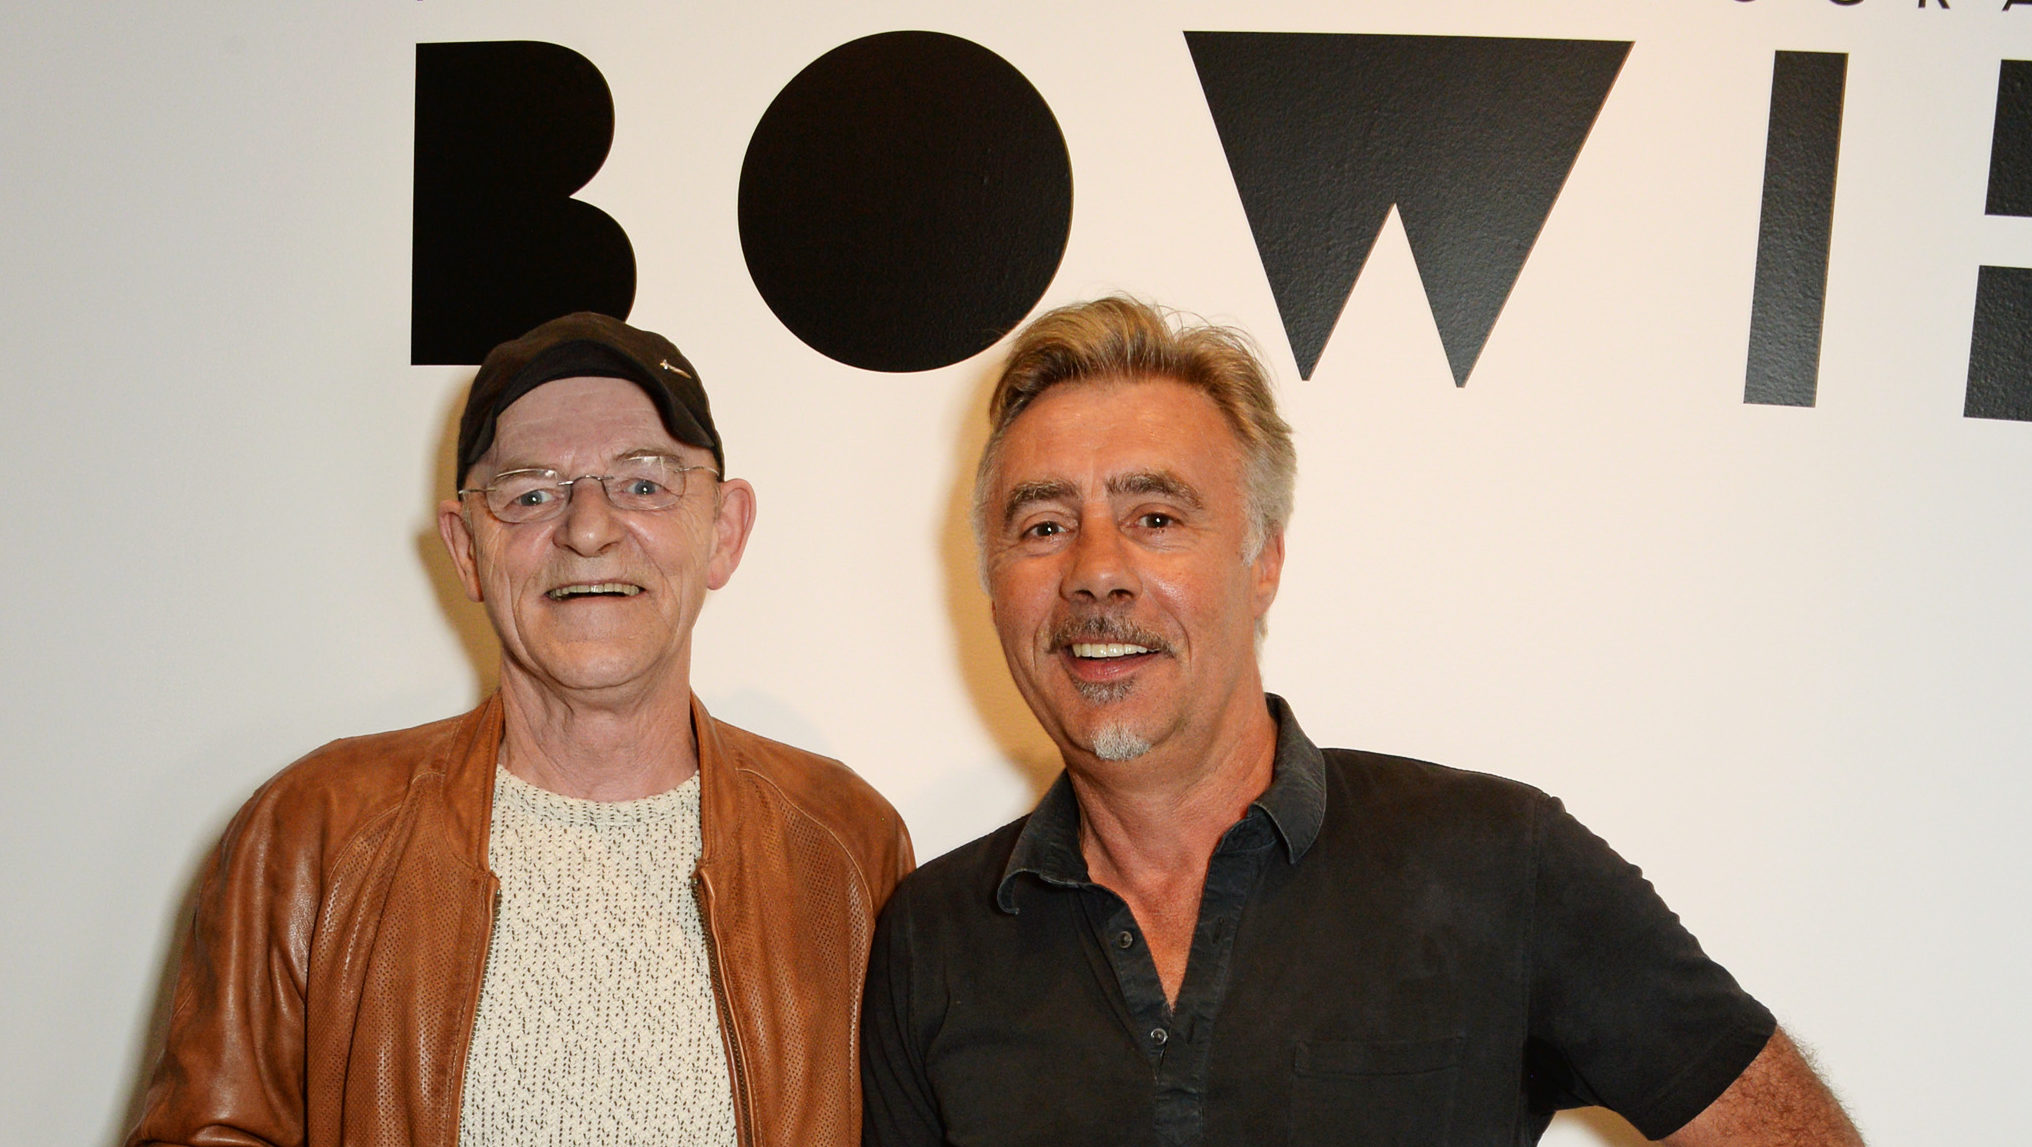 Mick Woodmansey (L) and Glen Matlock attend a private view of new exhibition 'David Bowie: Fame, Fashion, Photography' at The Hub. (David M. Benett/Dave Benett/Getty Images)